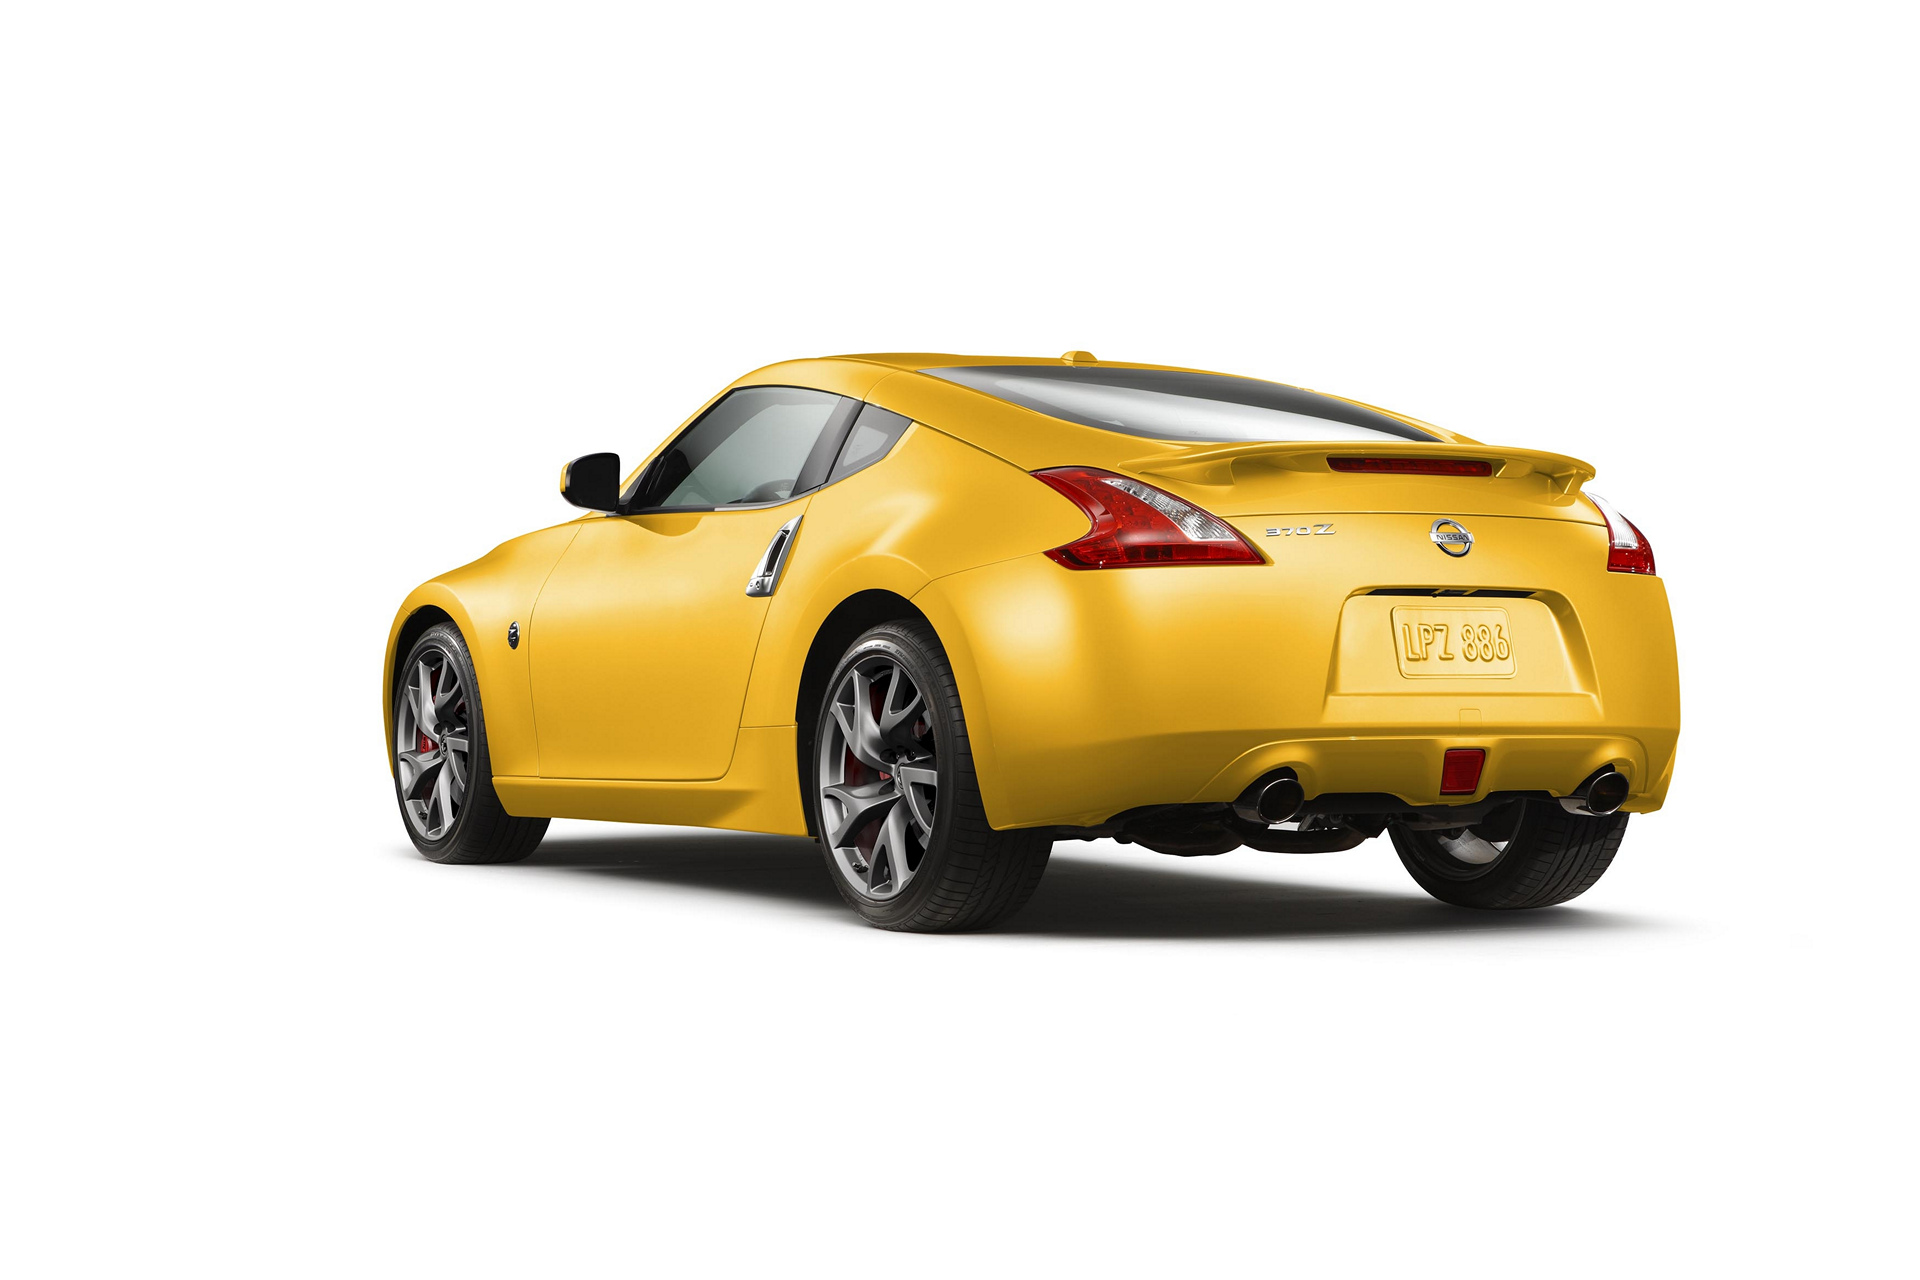 2017 Nissan 370Z Coupe © Nissan Motor Co., Ltd.